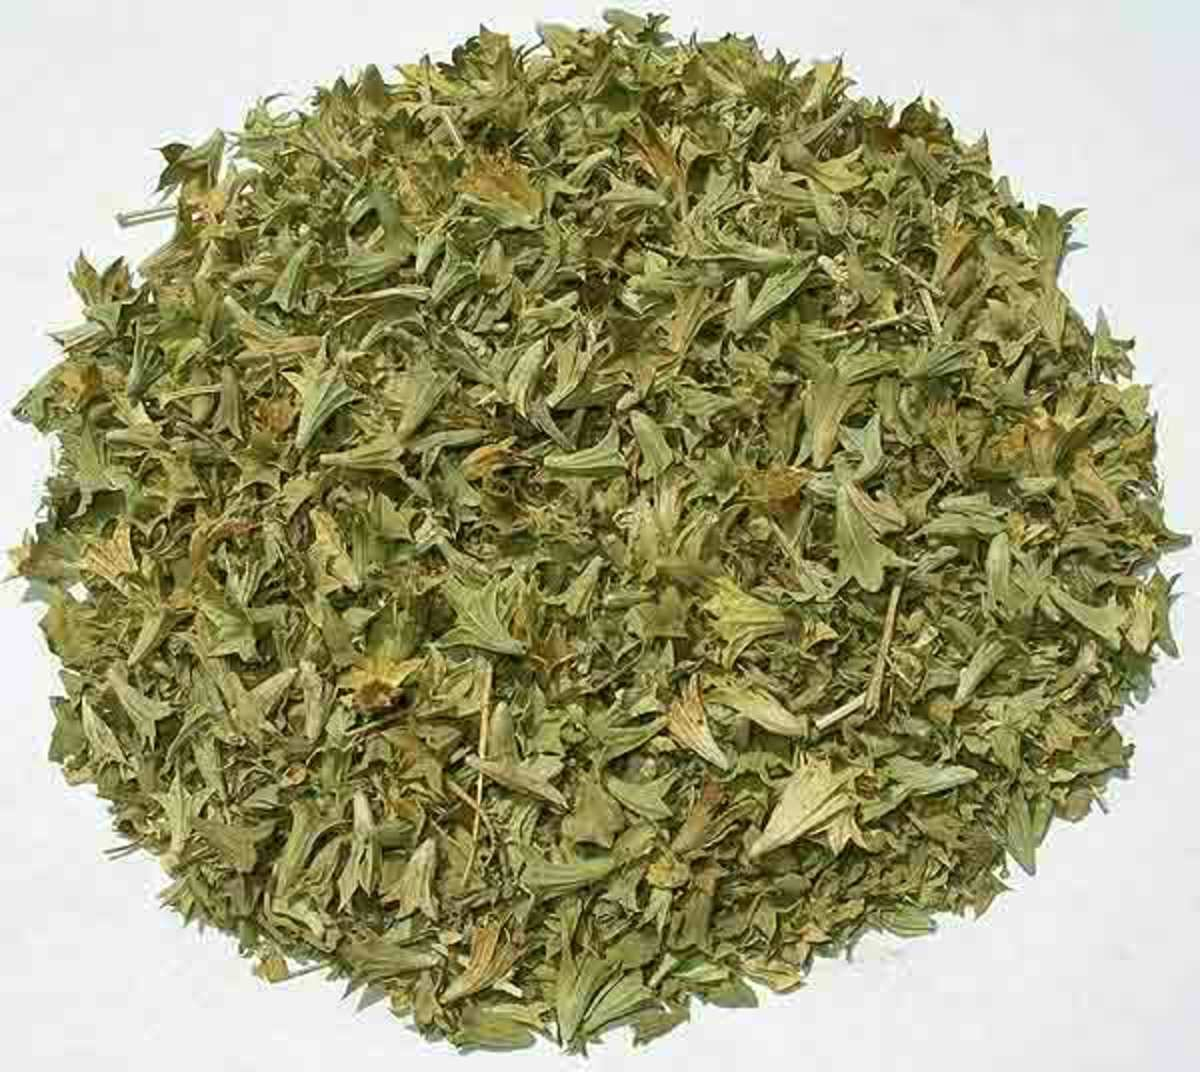 Intoxicating mint is a sedative used in some teas.